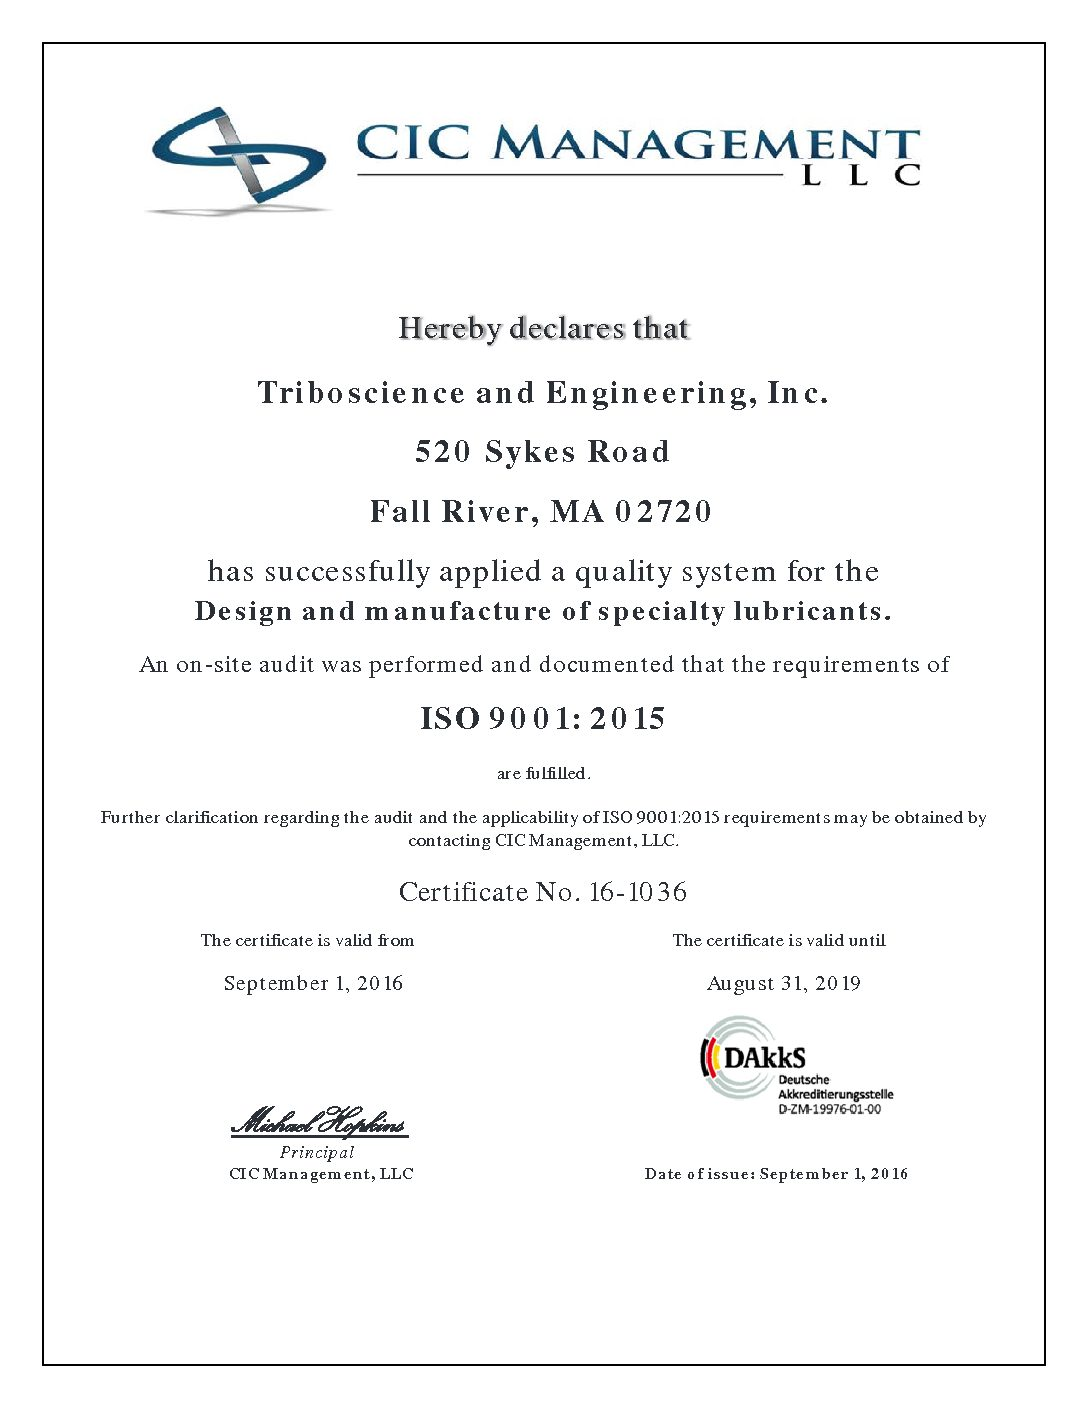 Certifications - Triboscience & Engineering